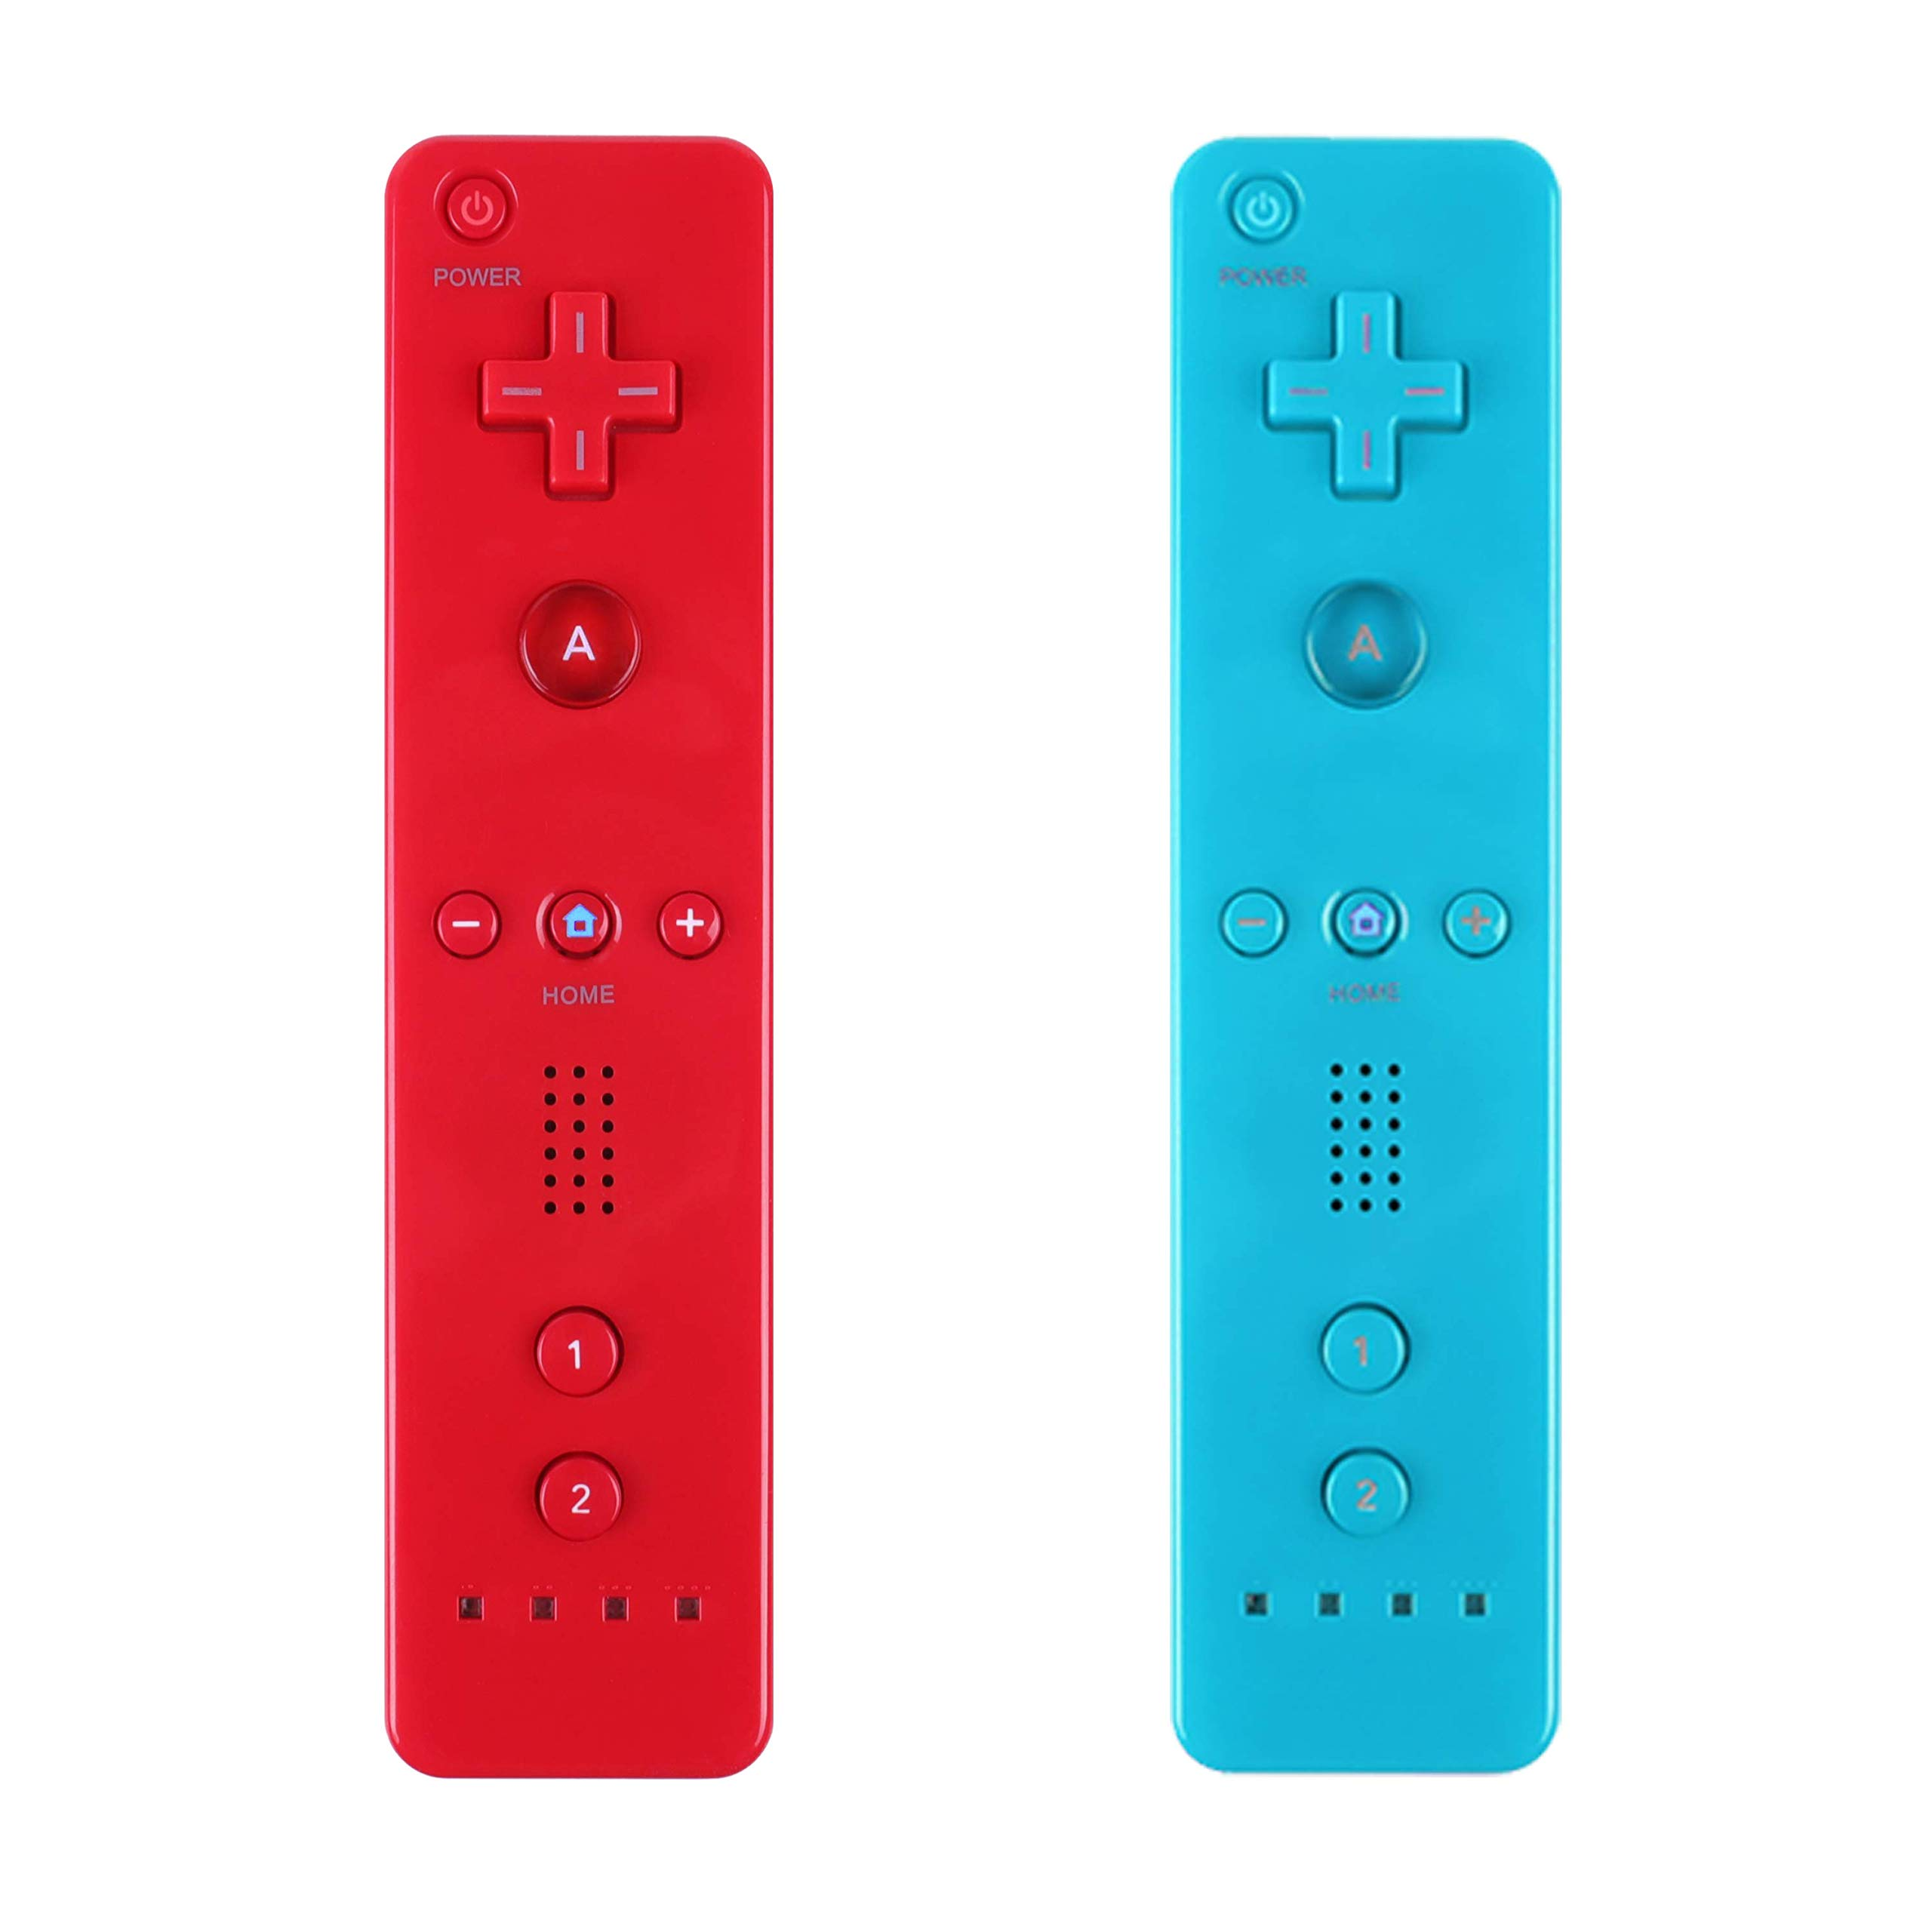 Yosikr 2 Packs Remote Wireless Controller Compatible for Nintendo wii/wii u Console - with Silicone Case and Wrist Strap (Red and Blue)